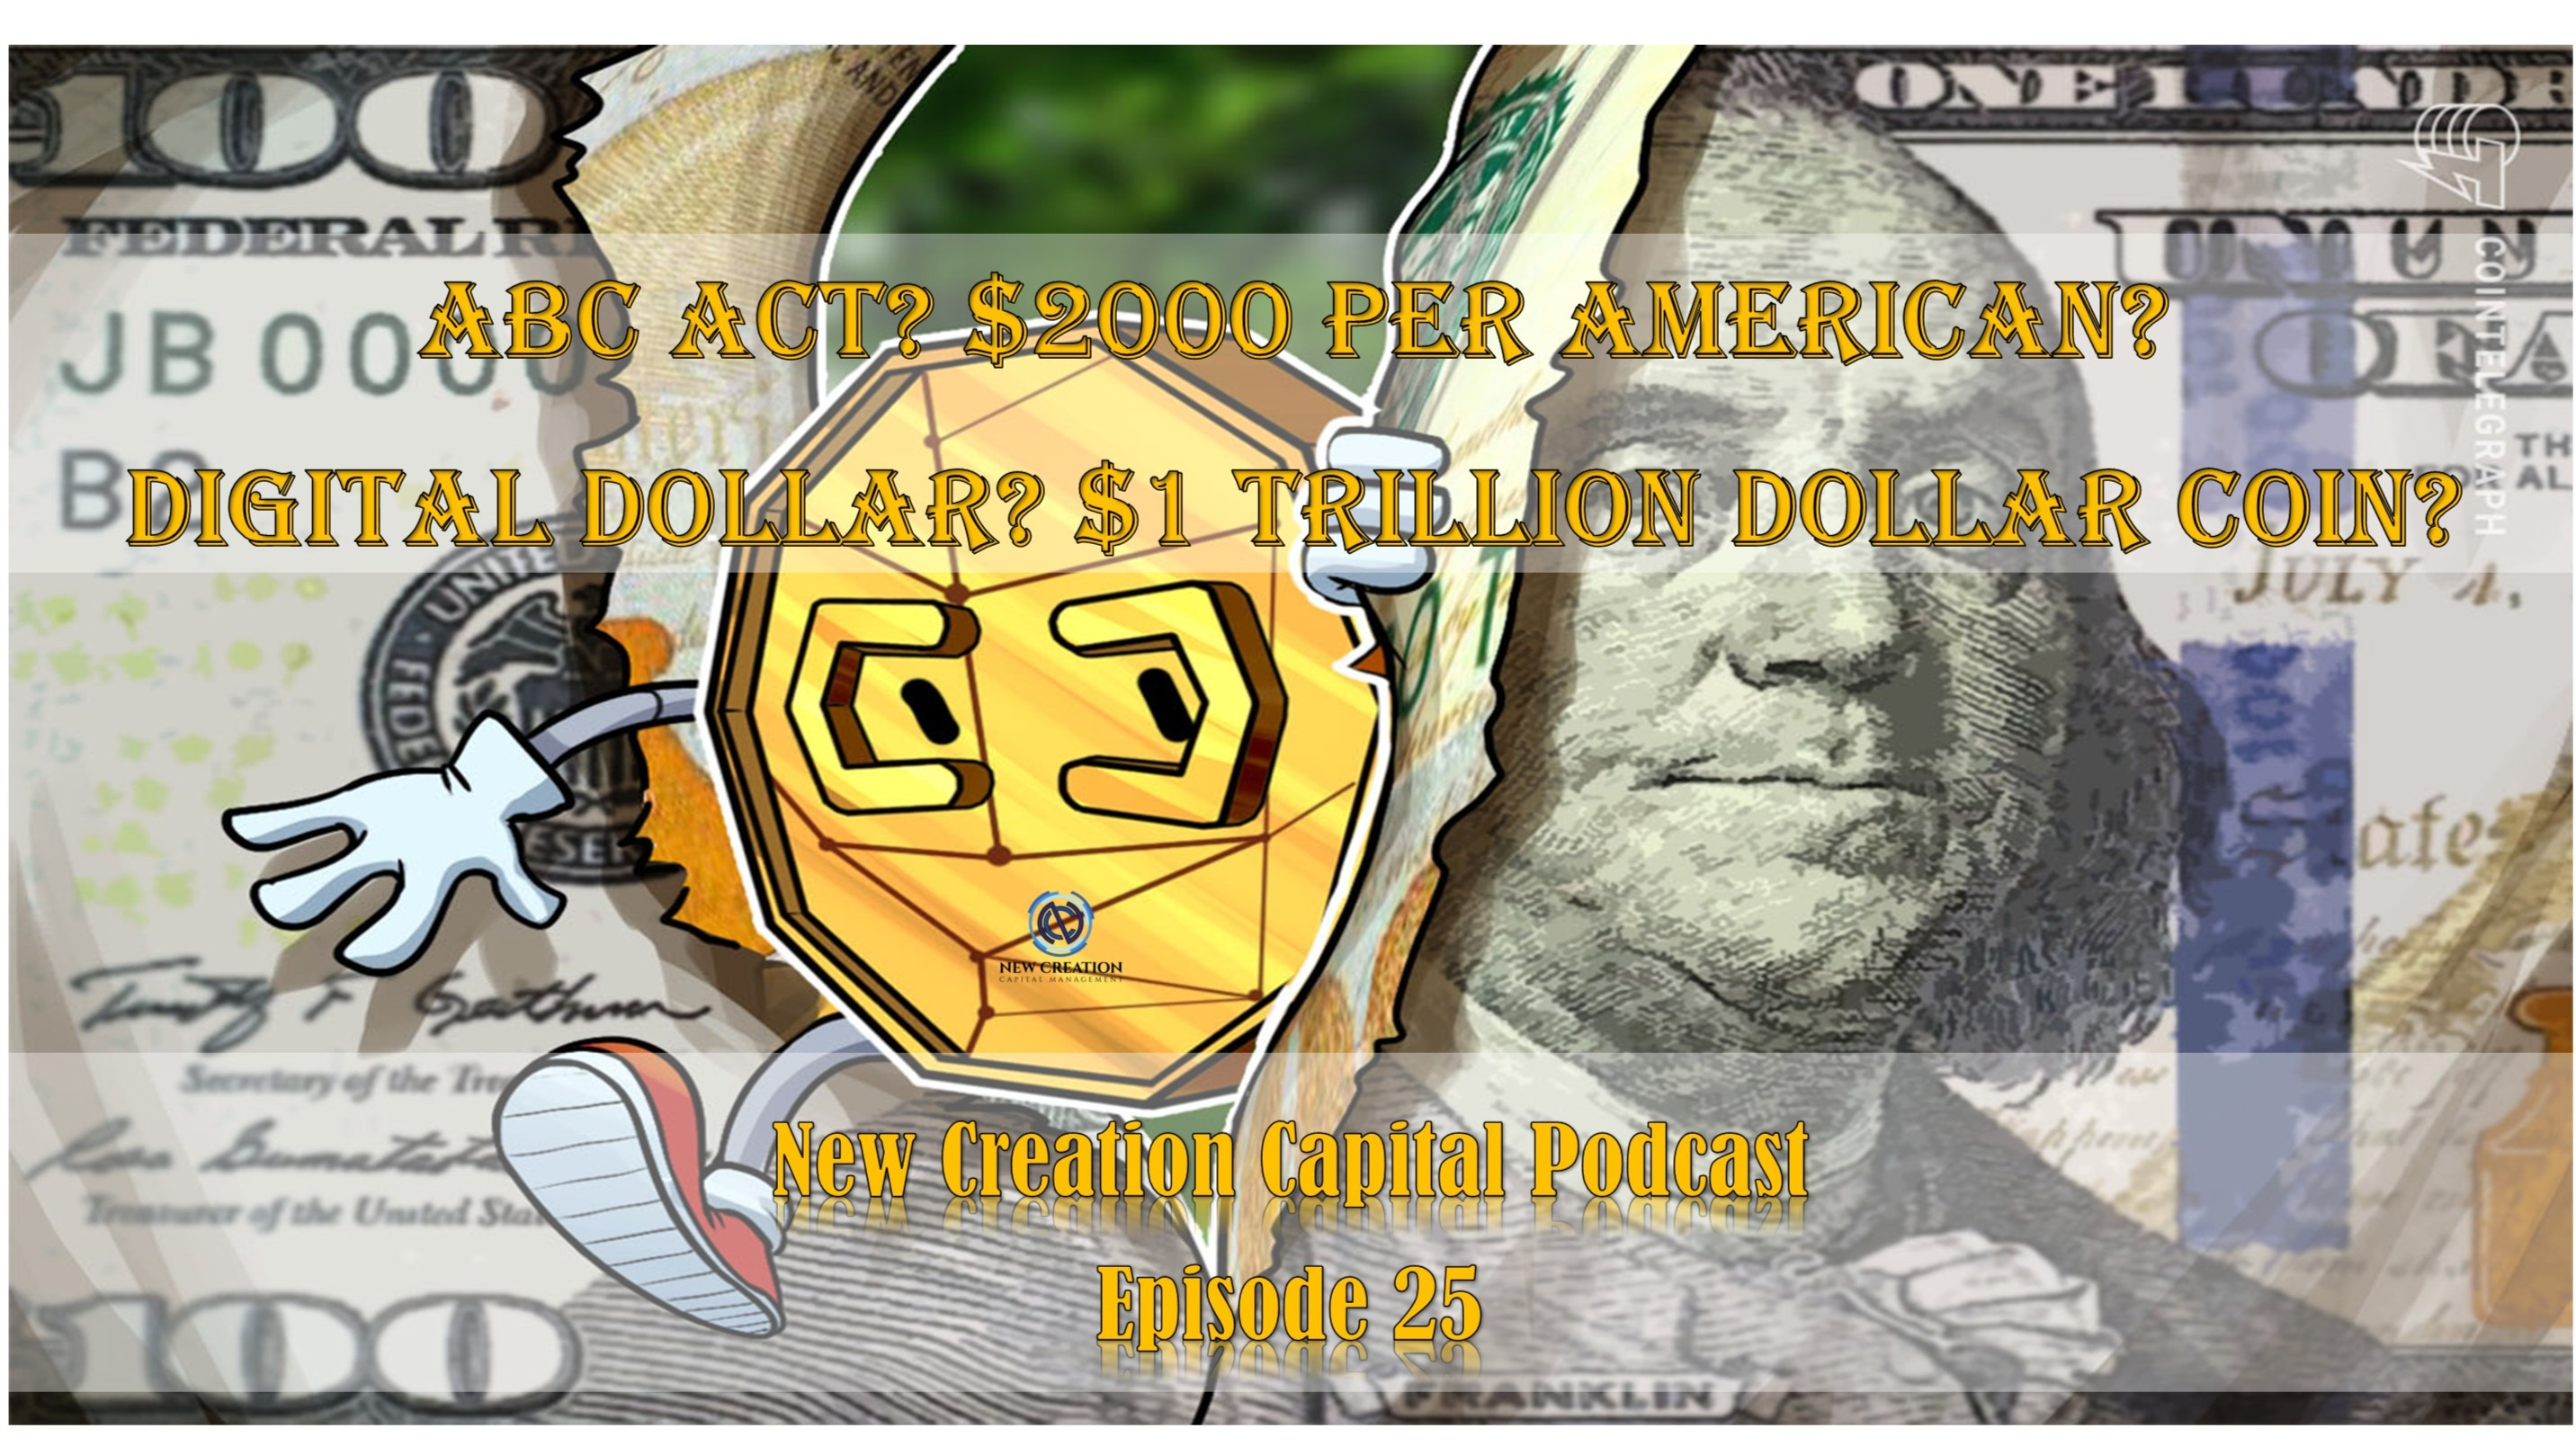 New Creation Capital Podcast Episode 25